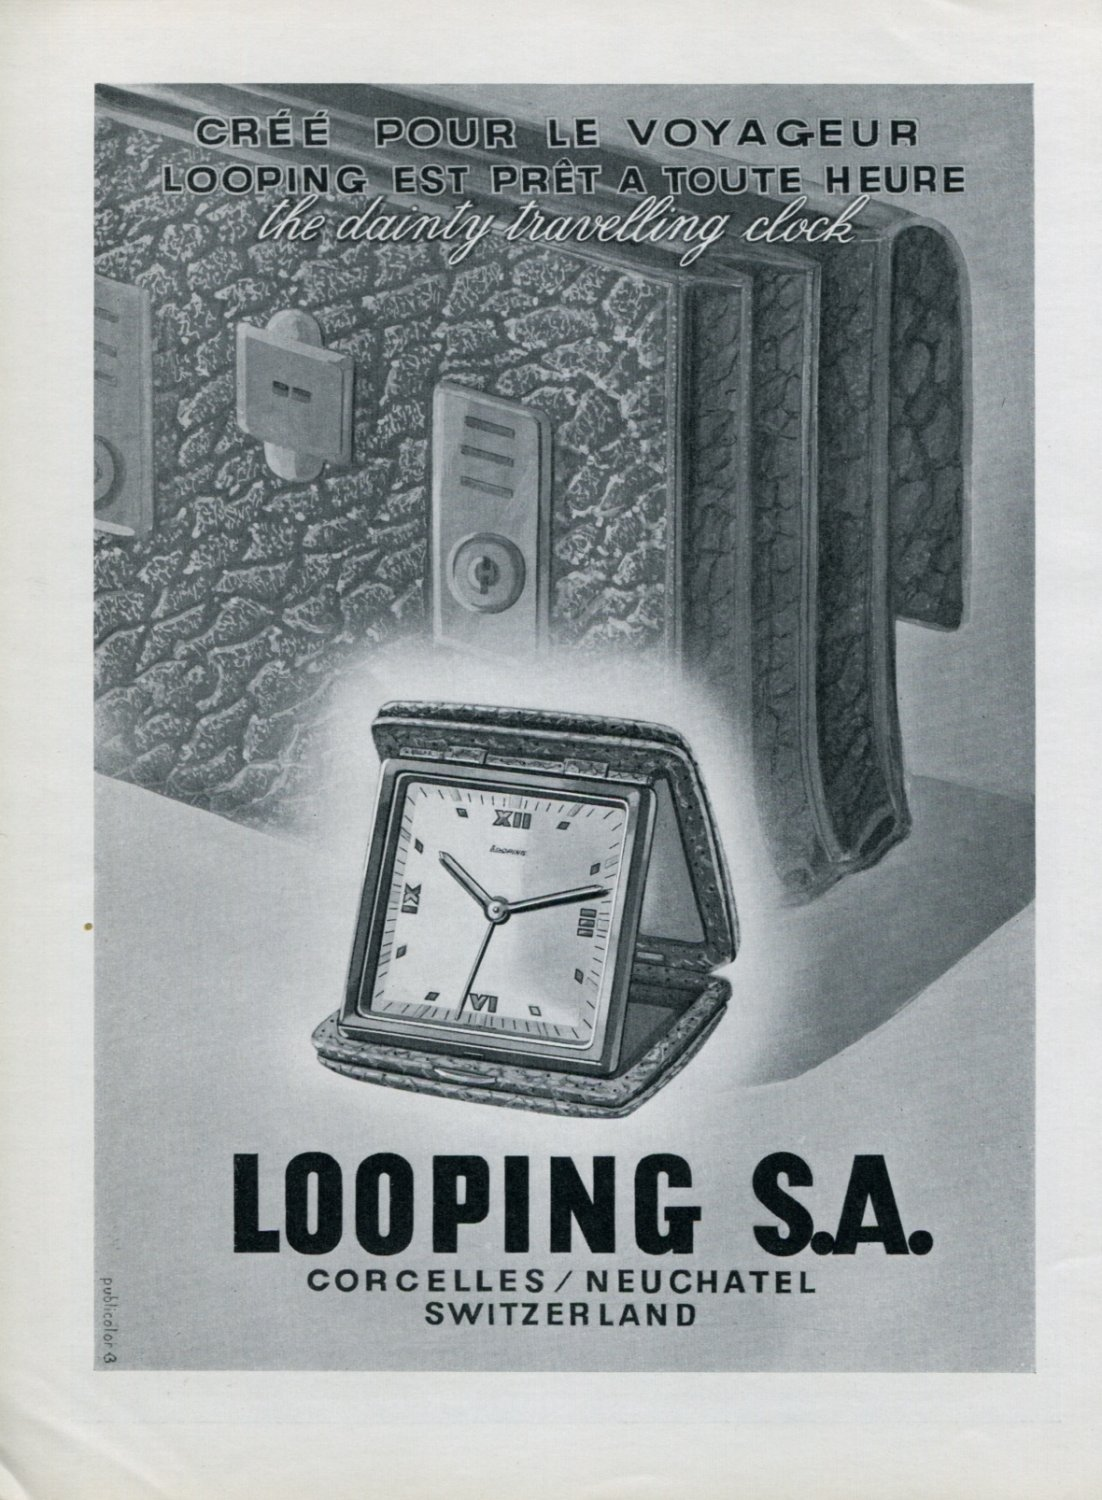 Vintage 1947 Looping Clock Company Looping SA Suisse Publicite Swiss Print Ad Advert